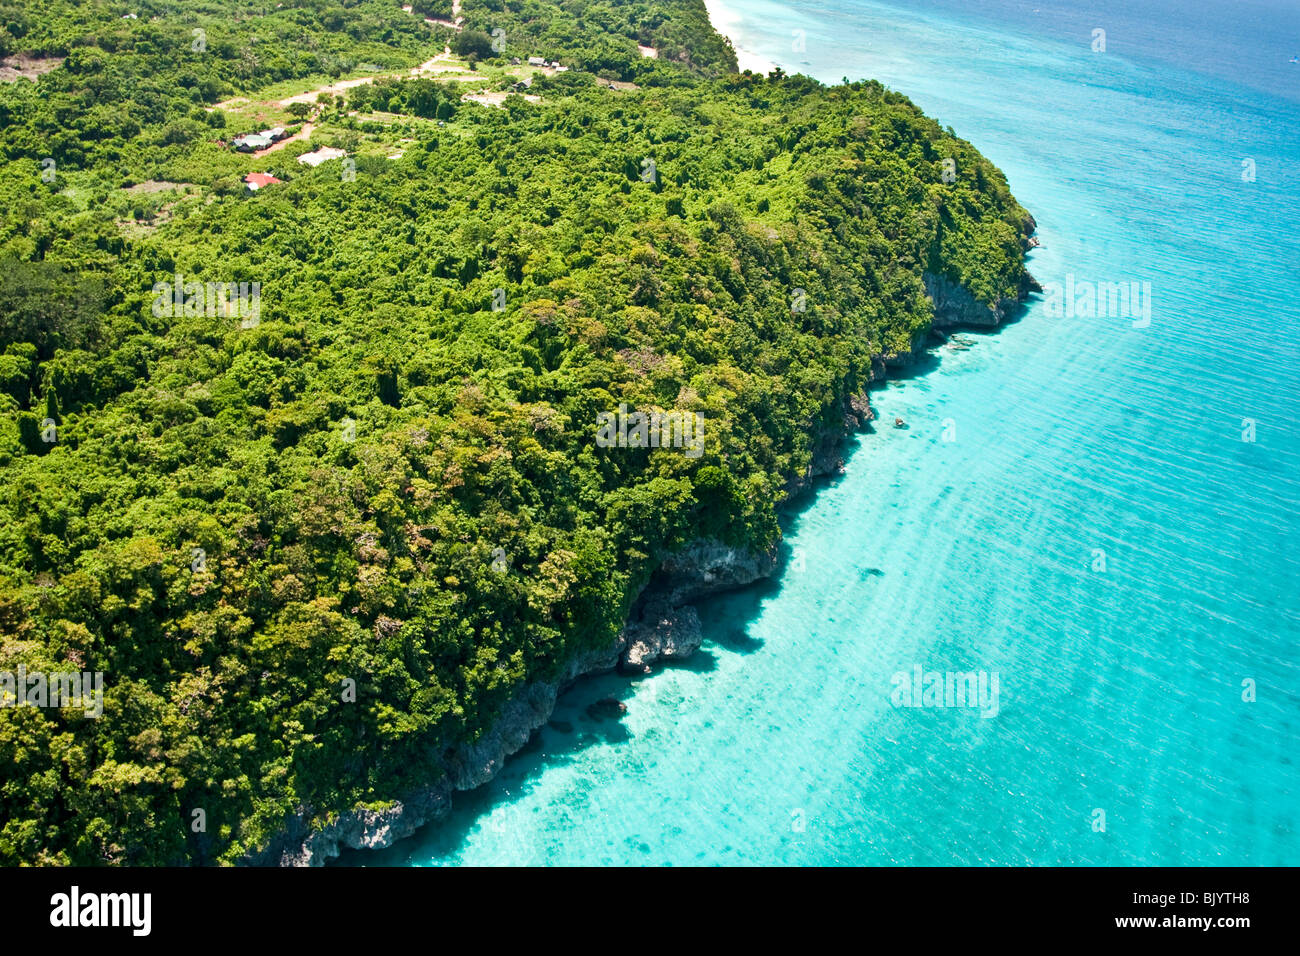 Aerial view of Boracay Islands in Central Philippines - Stock Image